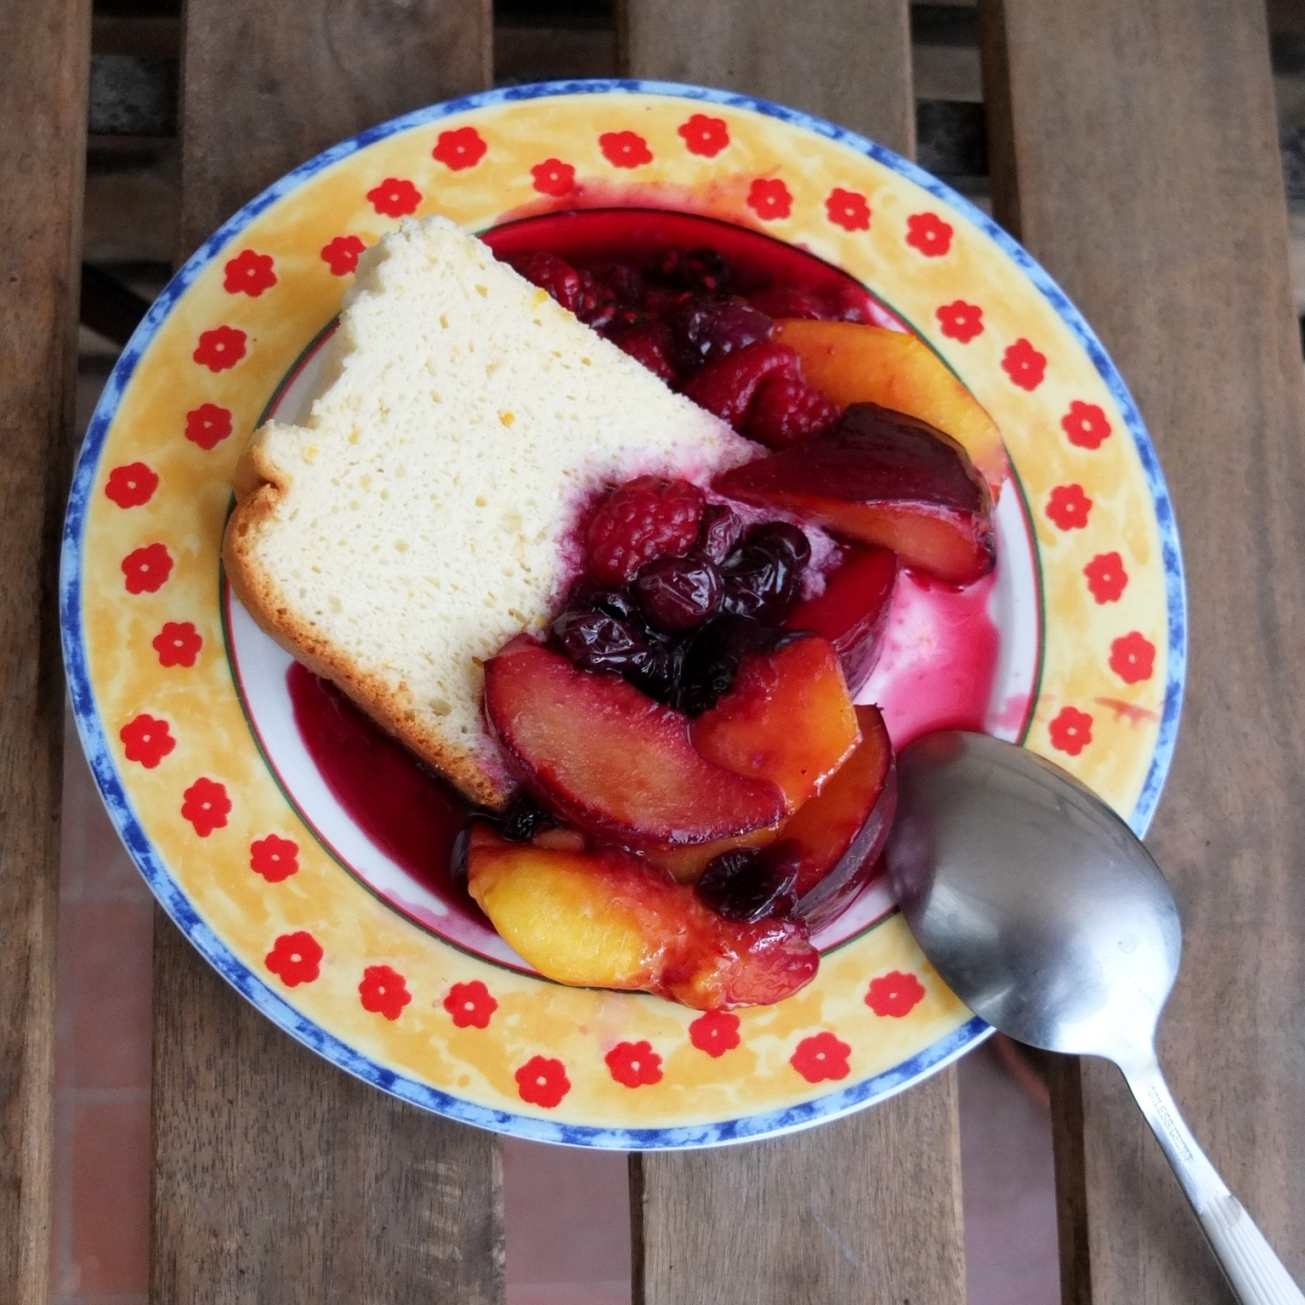 Japanese cheesecake with fruit en papillote